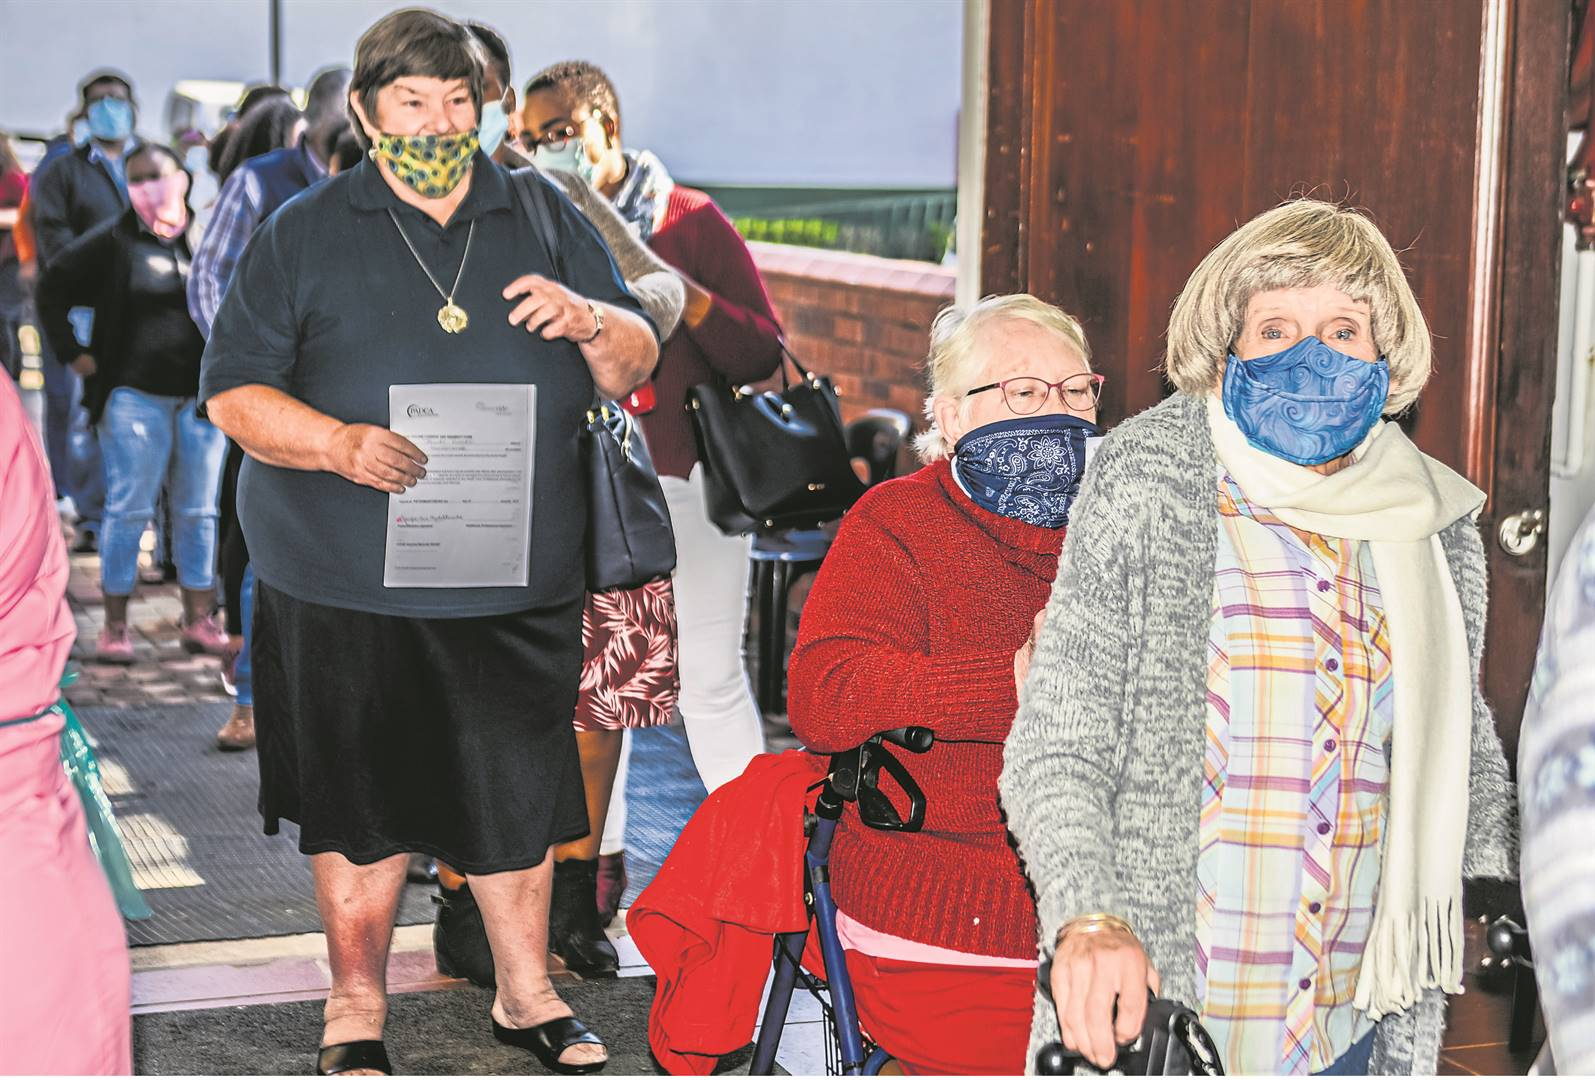 Best friends Jean Fernlay (85) and Cherly Smith (72) from Sunnyside were among the hundreds that turned out to be vaccinated at the Royal Showgrounds in Pietermaritzburg at the start of the vaccine roll-out in KwaZulu-Natal.